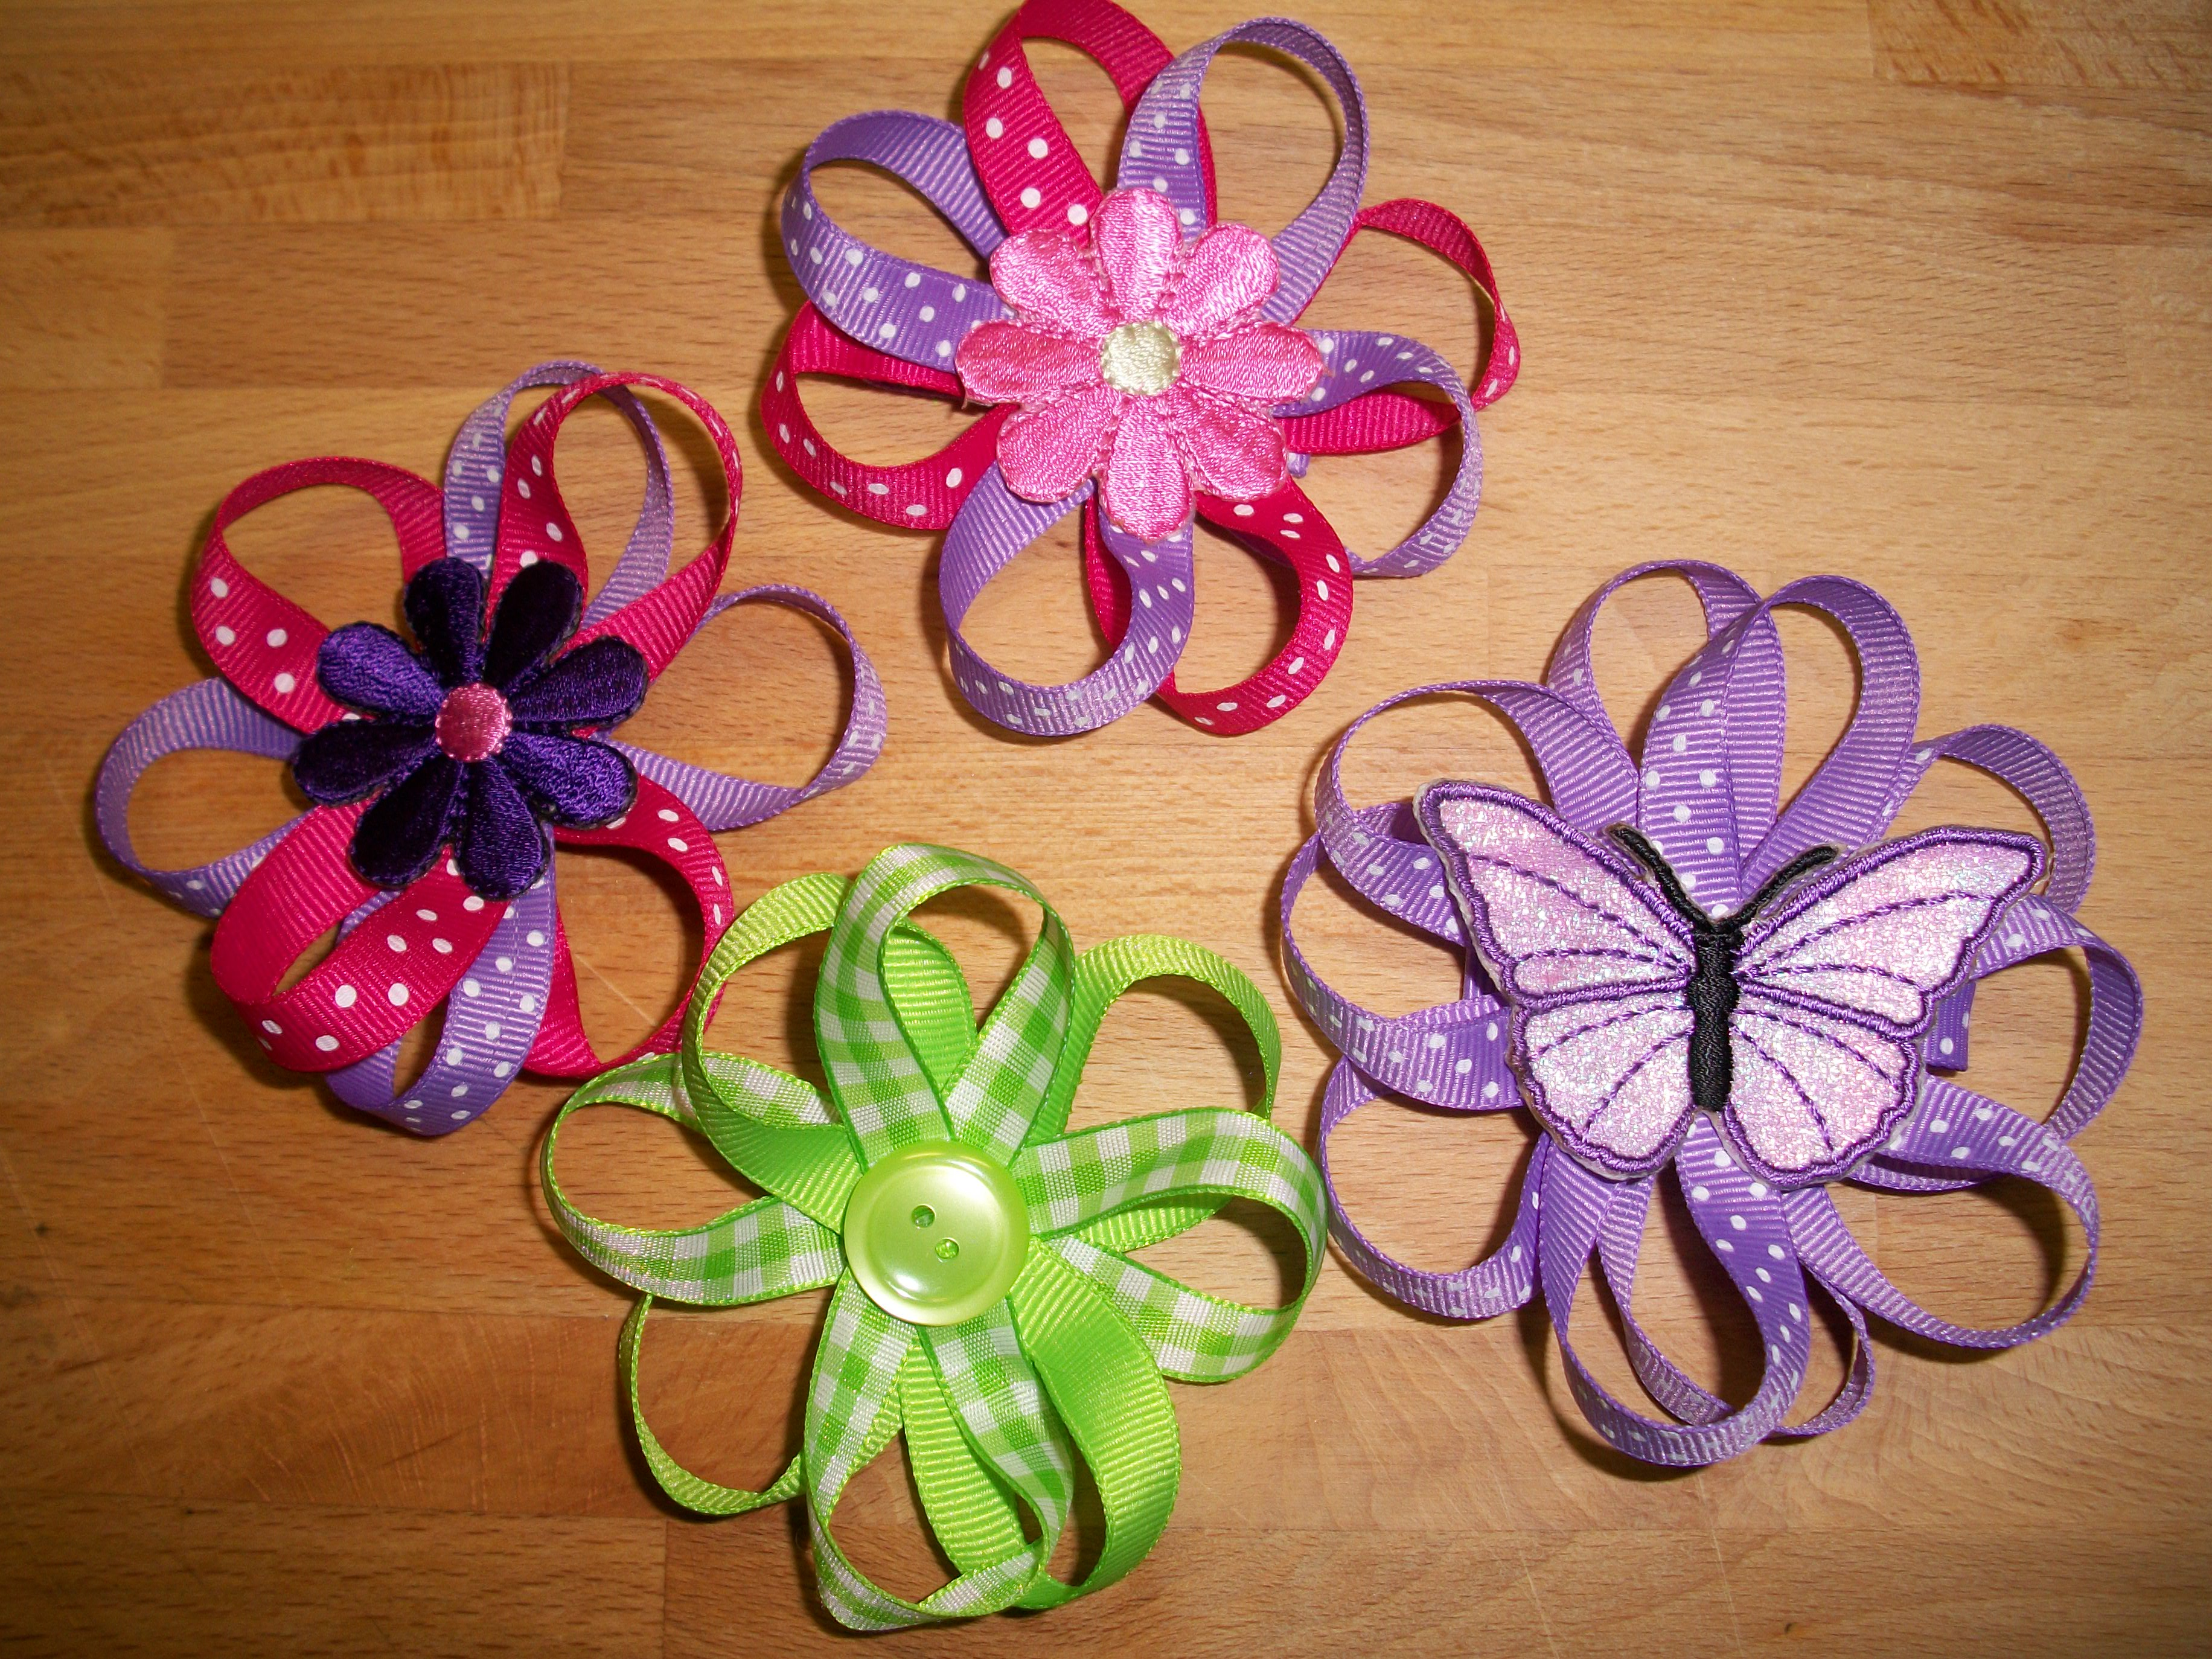 Fabric flowers with bling! Or any kinda fabric flowers Find this Pin and more on DIY HAIR BOWS/FLOWERS by Tessie Diver. DIY Fabric Flowers diy instructions directions project do it yourself step by step stepbystep how to howto pictorial tutorial good for head bands.